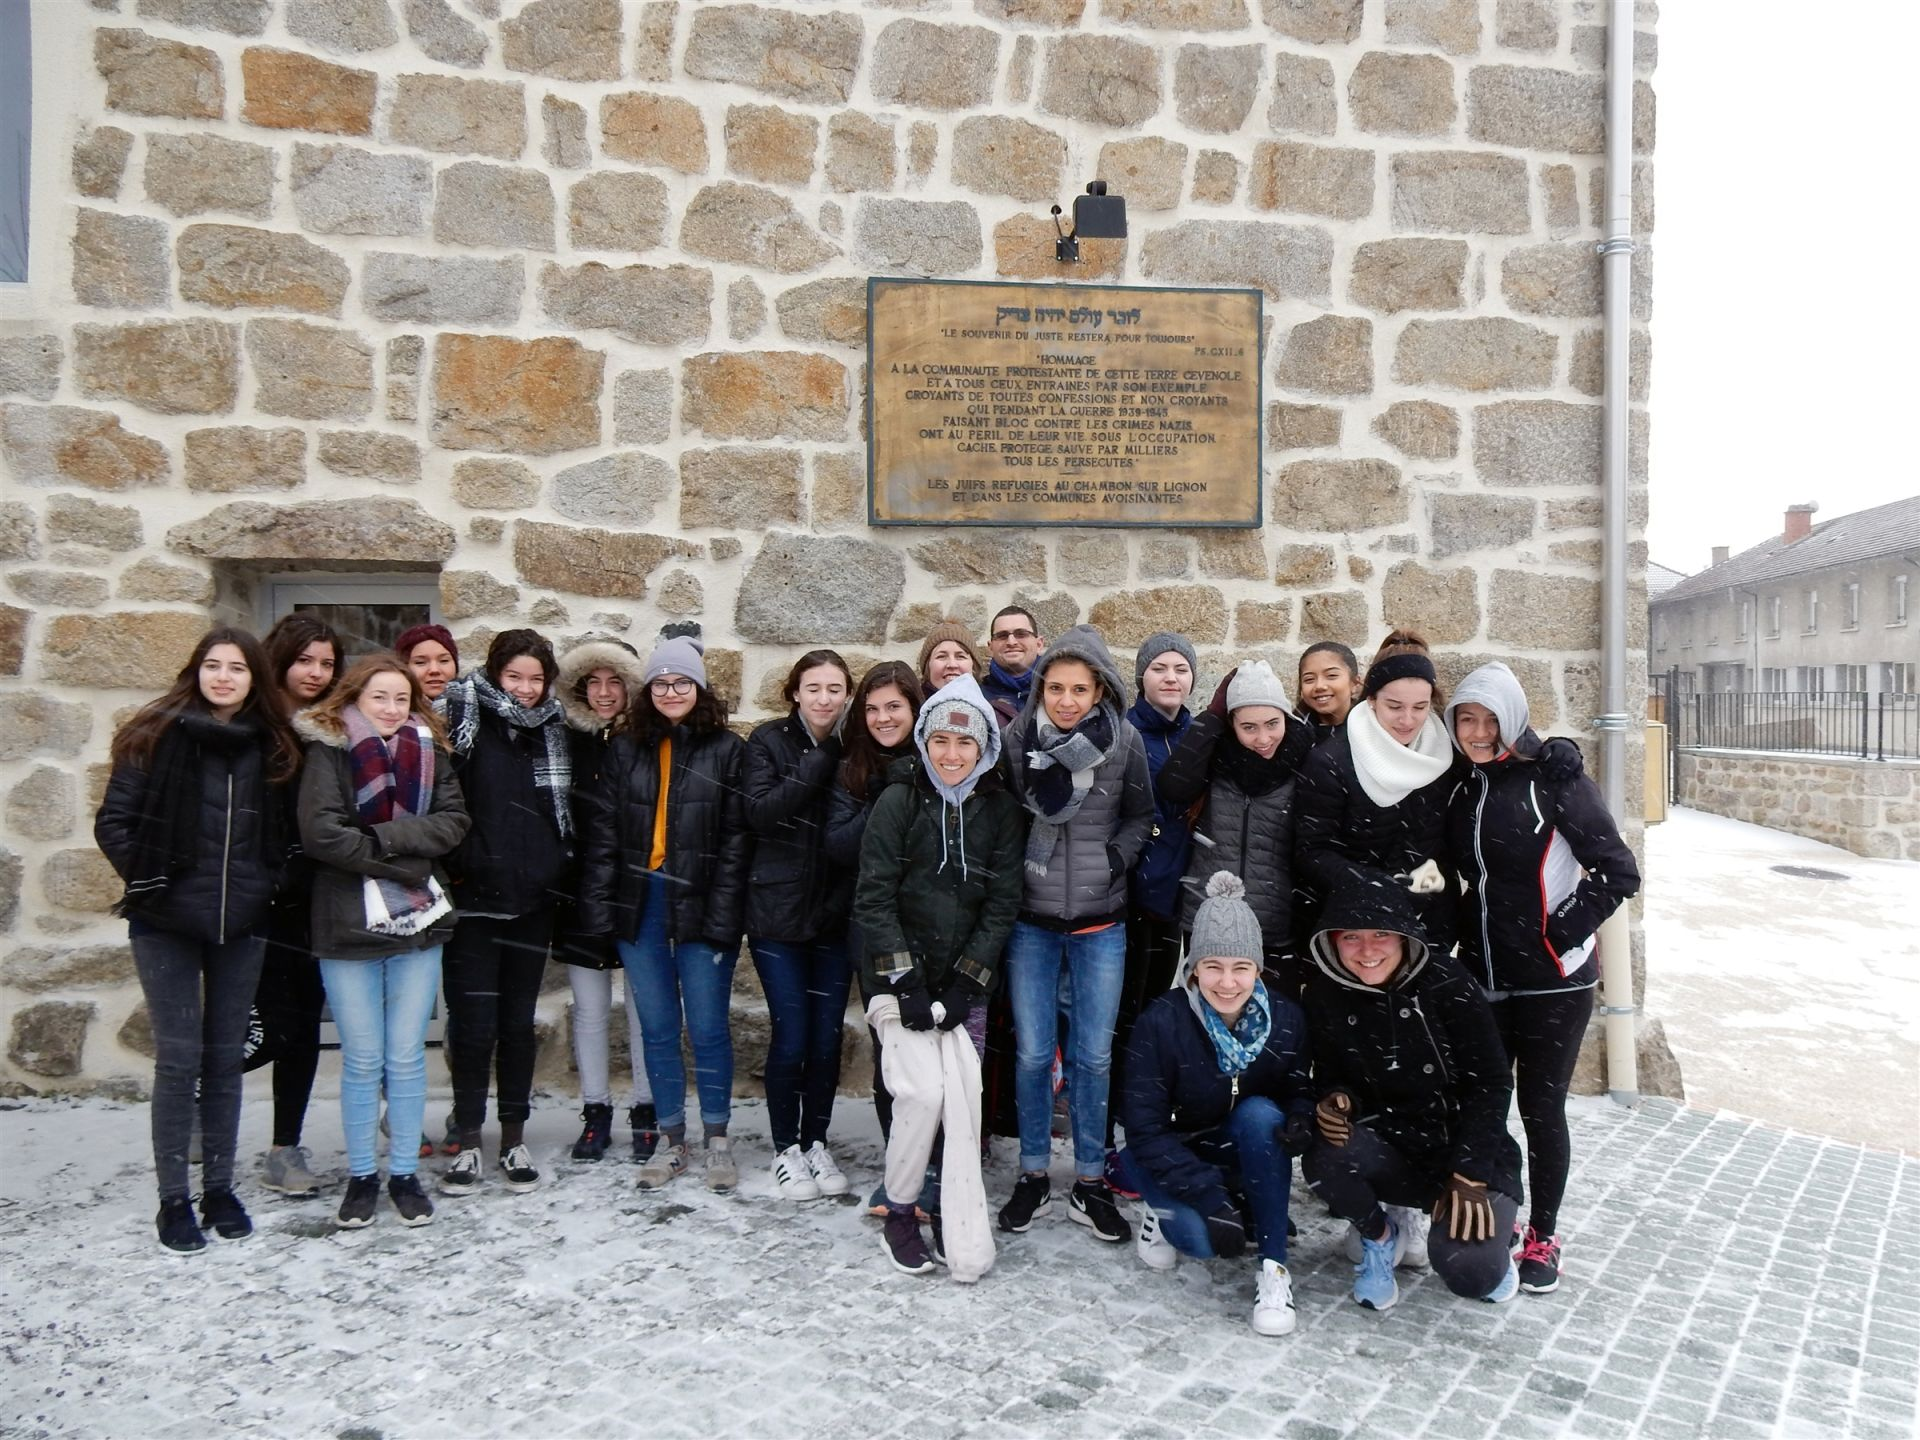 Classroom lessons came to life while visiting Le Chambon-sur-Lignon, a village now well-known in the Oak Knoll community for their efforts to save 3,500 Jews during the Holocaust.